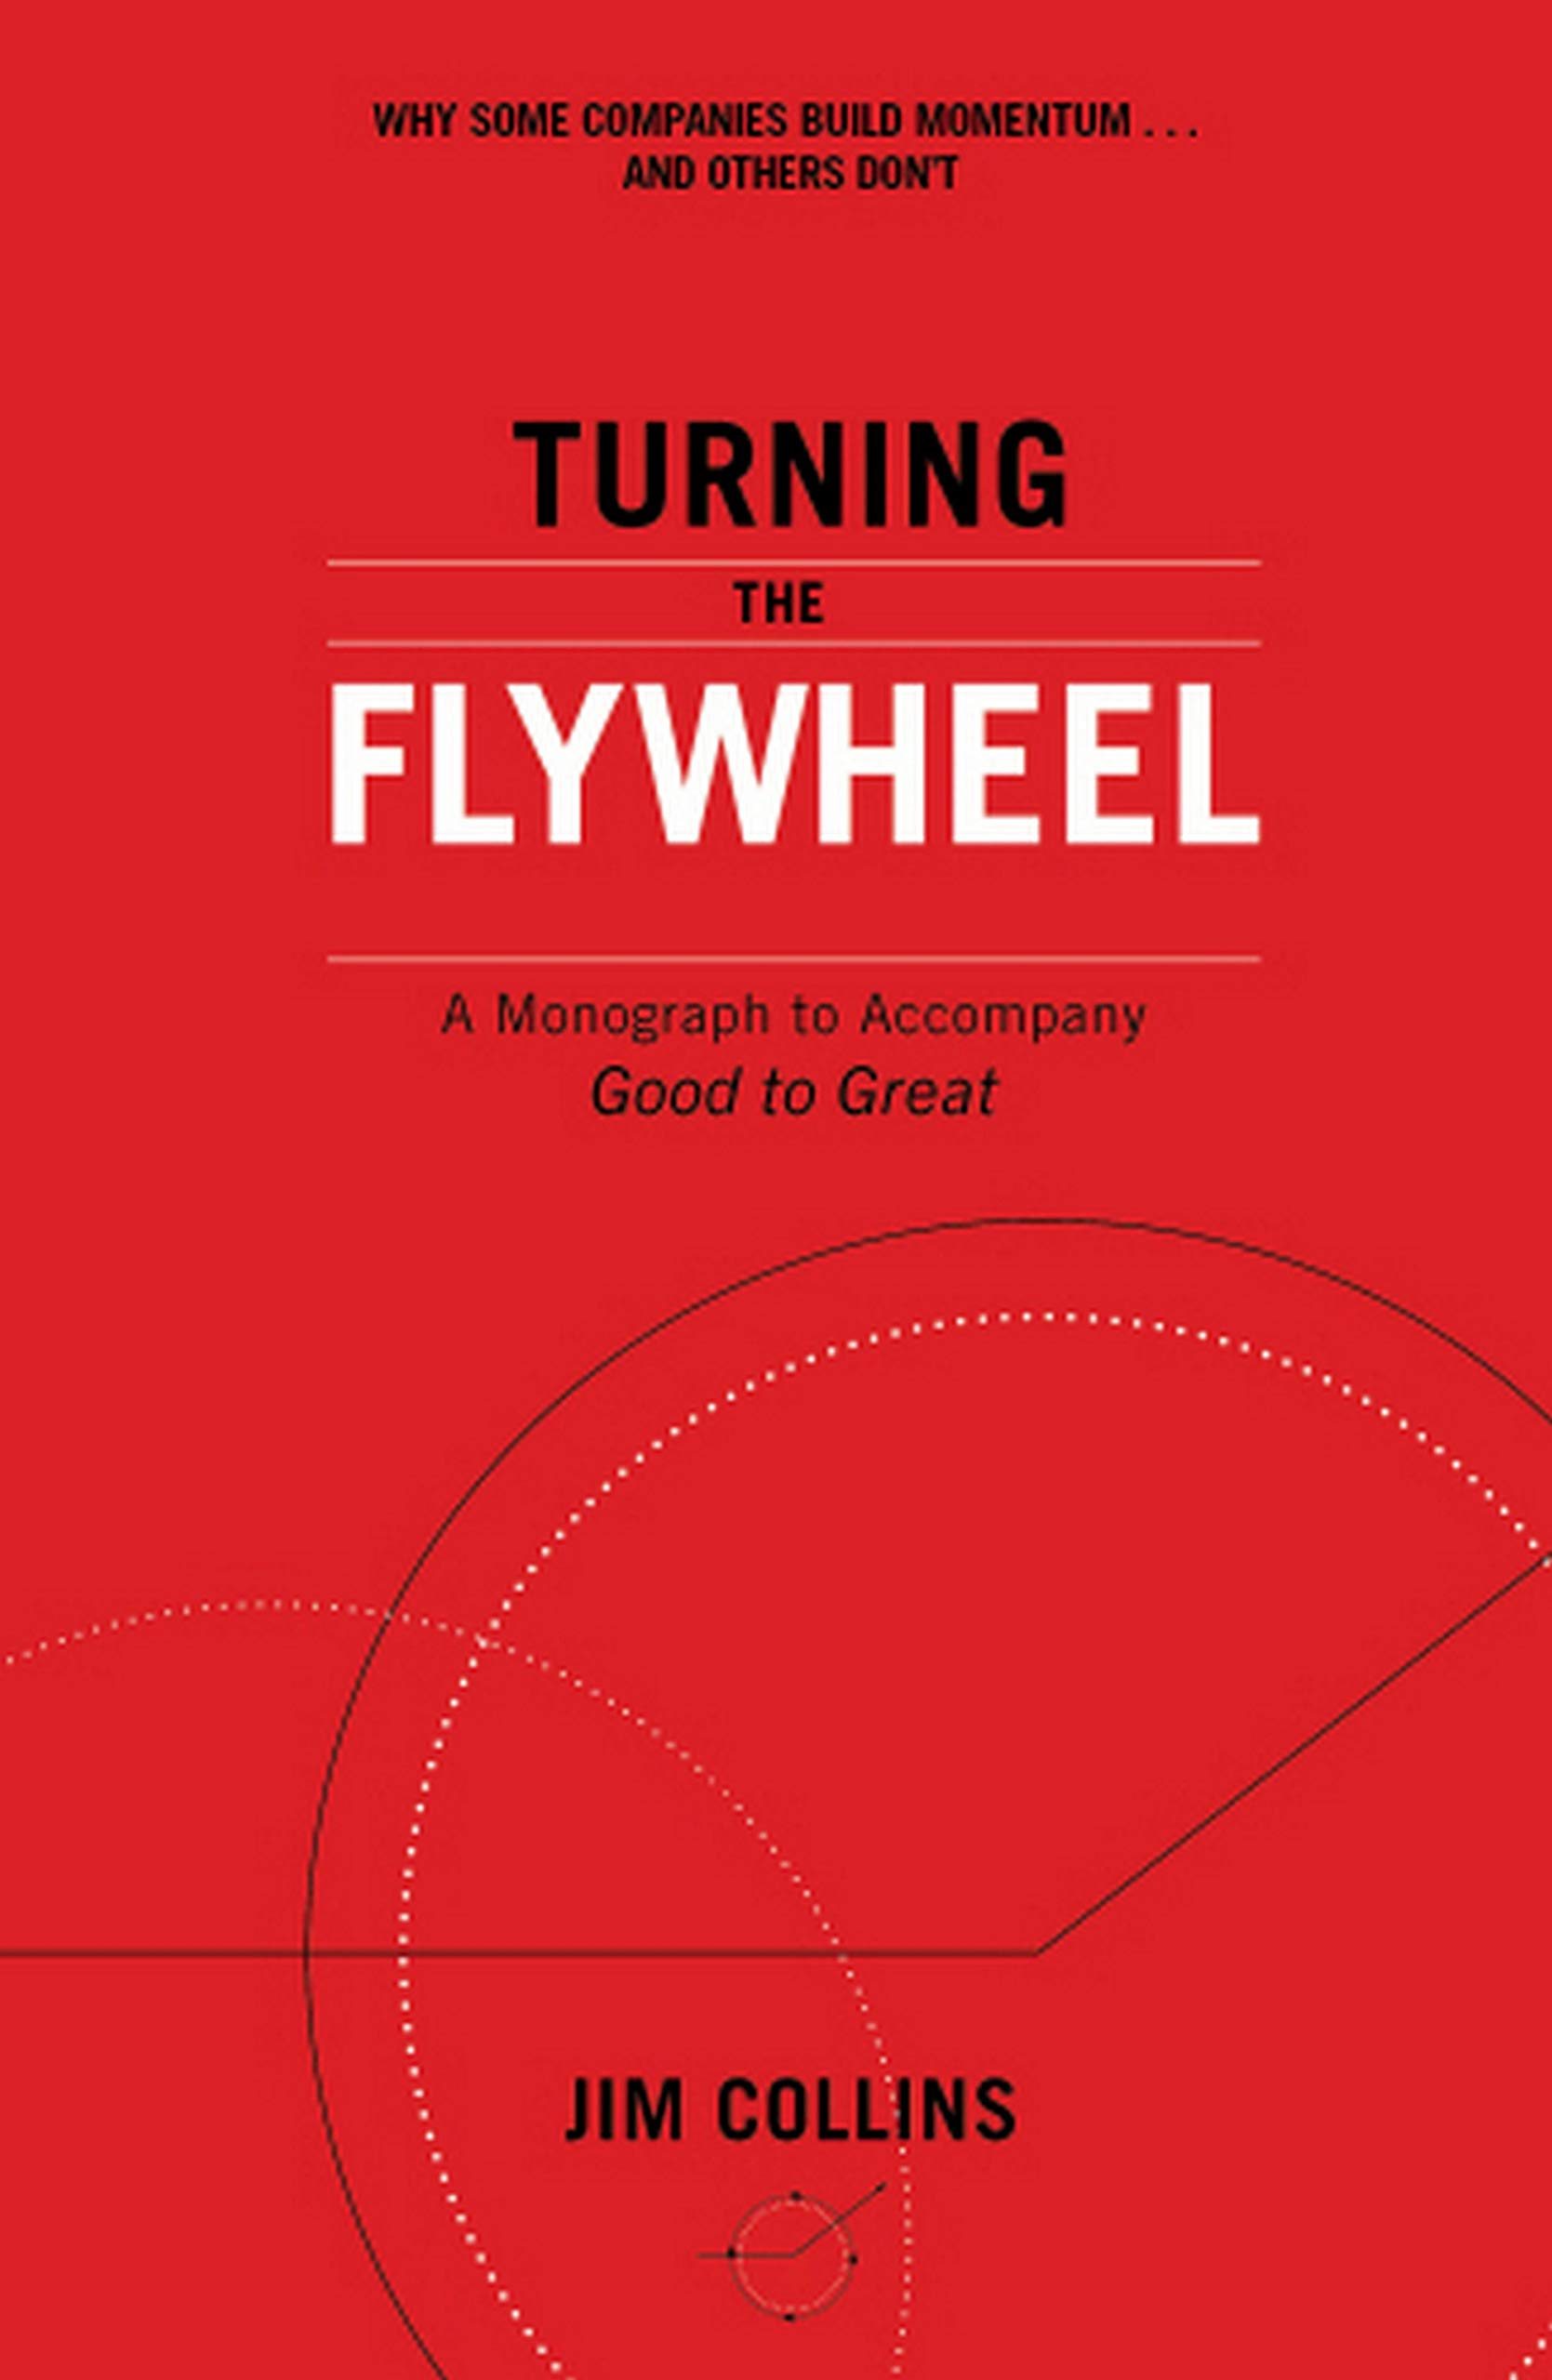 Turning the Flywheel : A Monograph to Accompany Good to Great